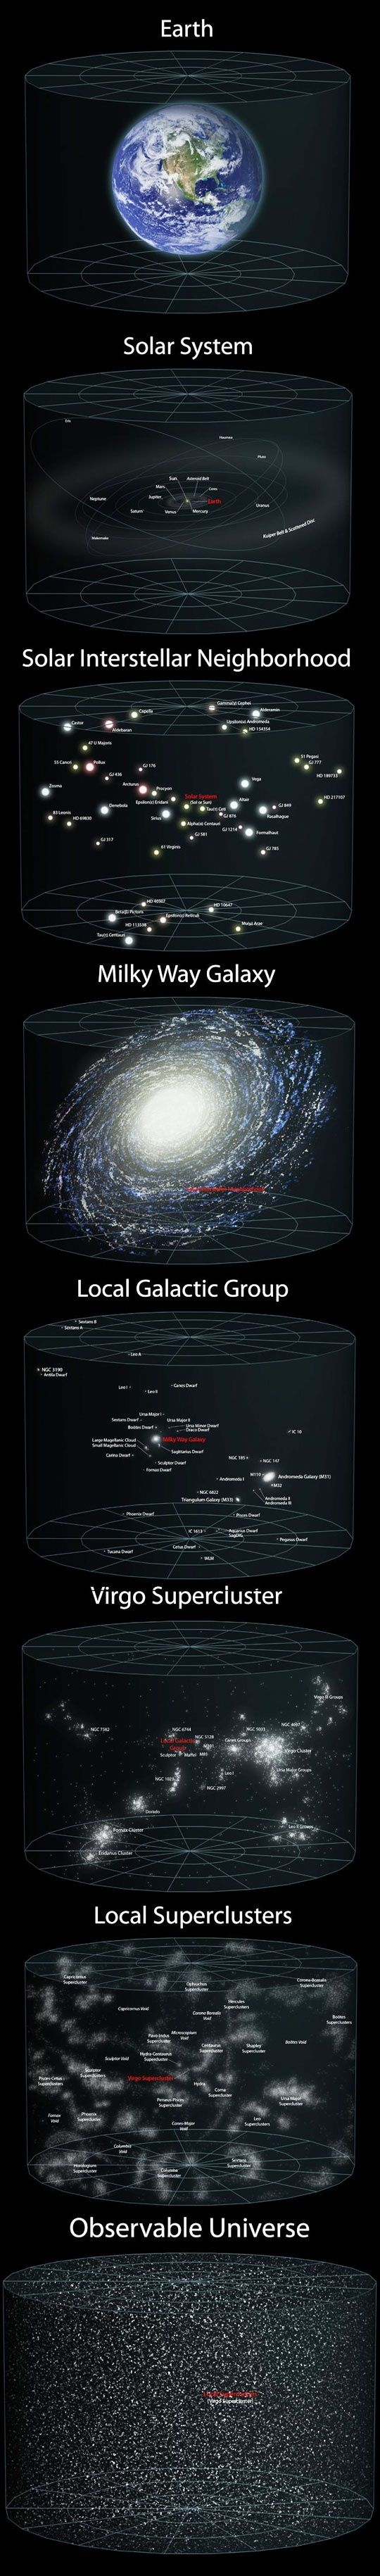 Earth to the Observable Universe and beyond.